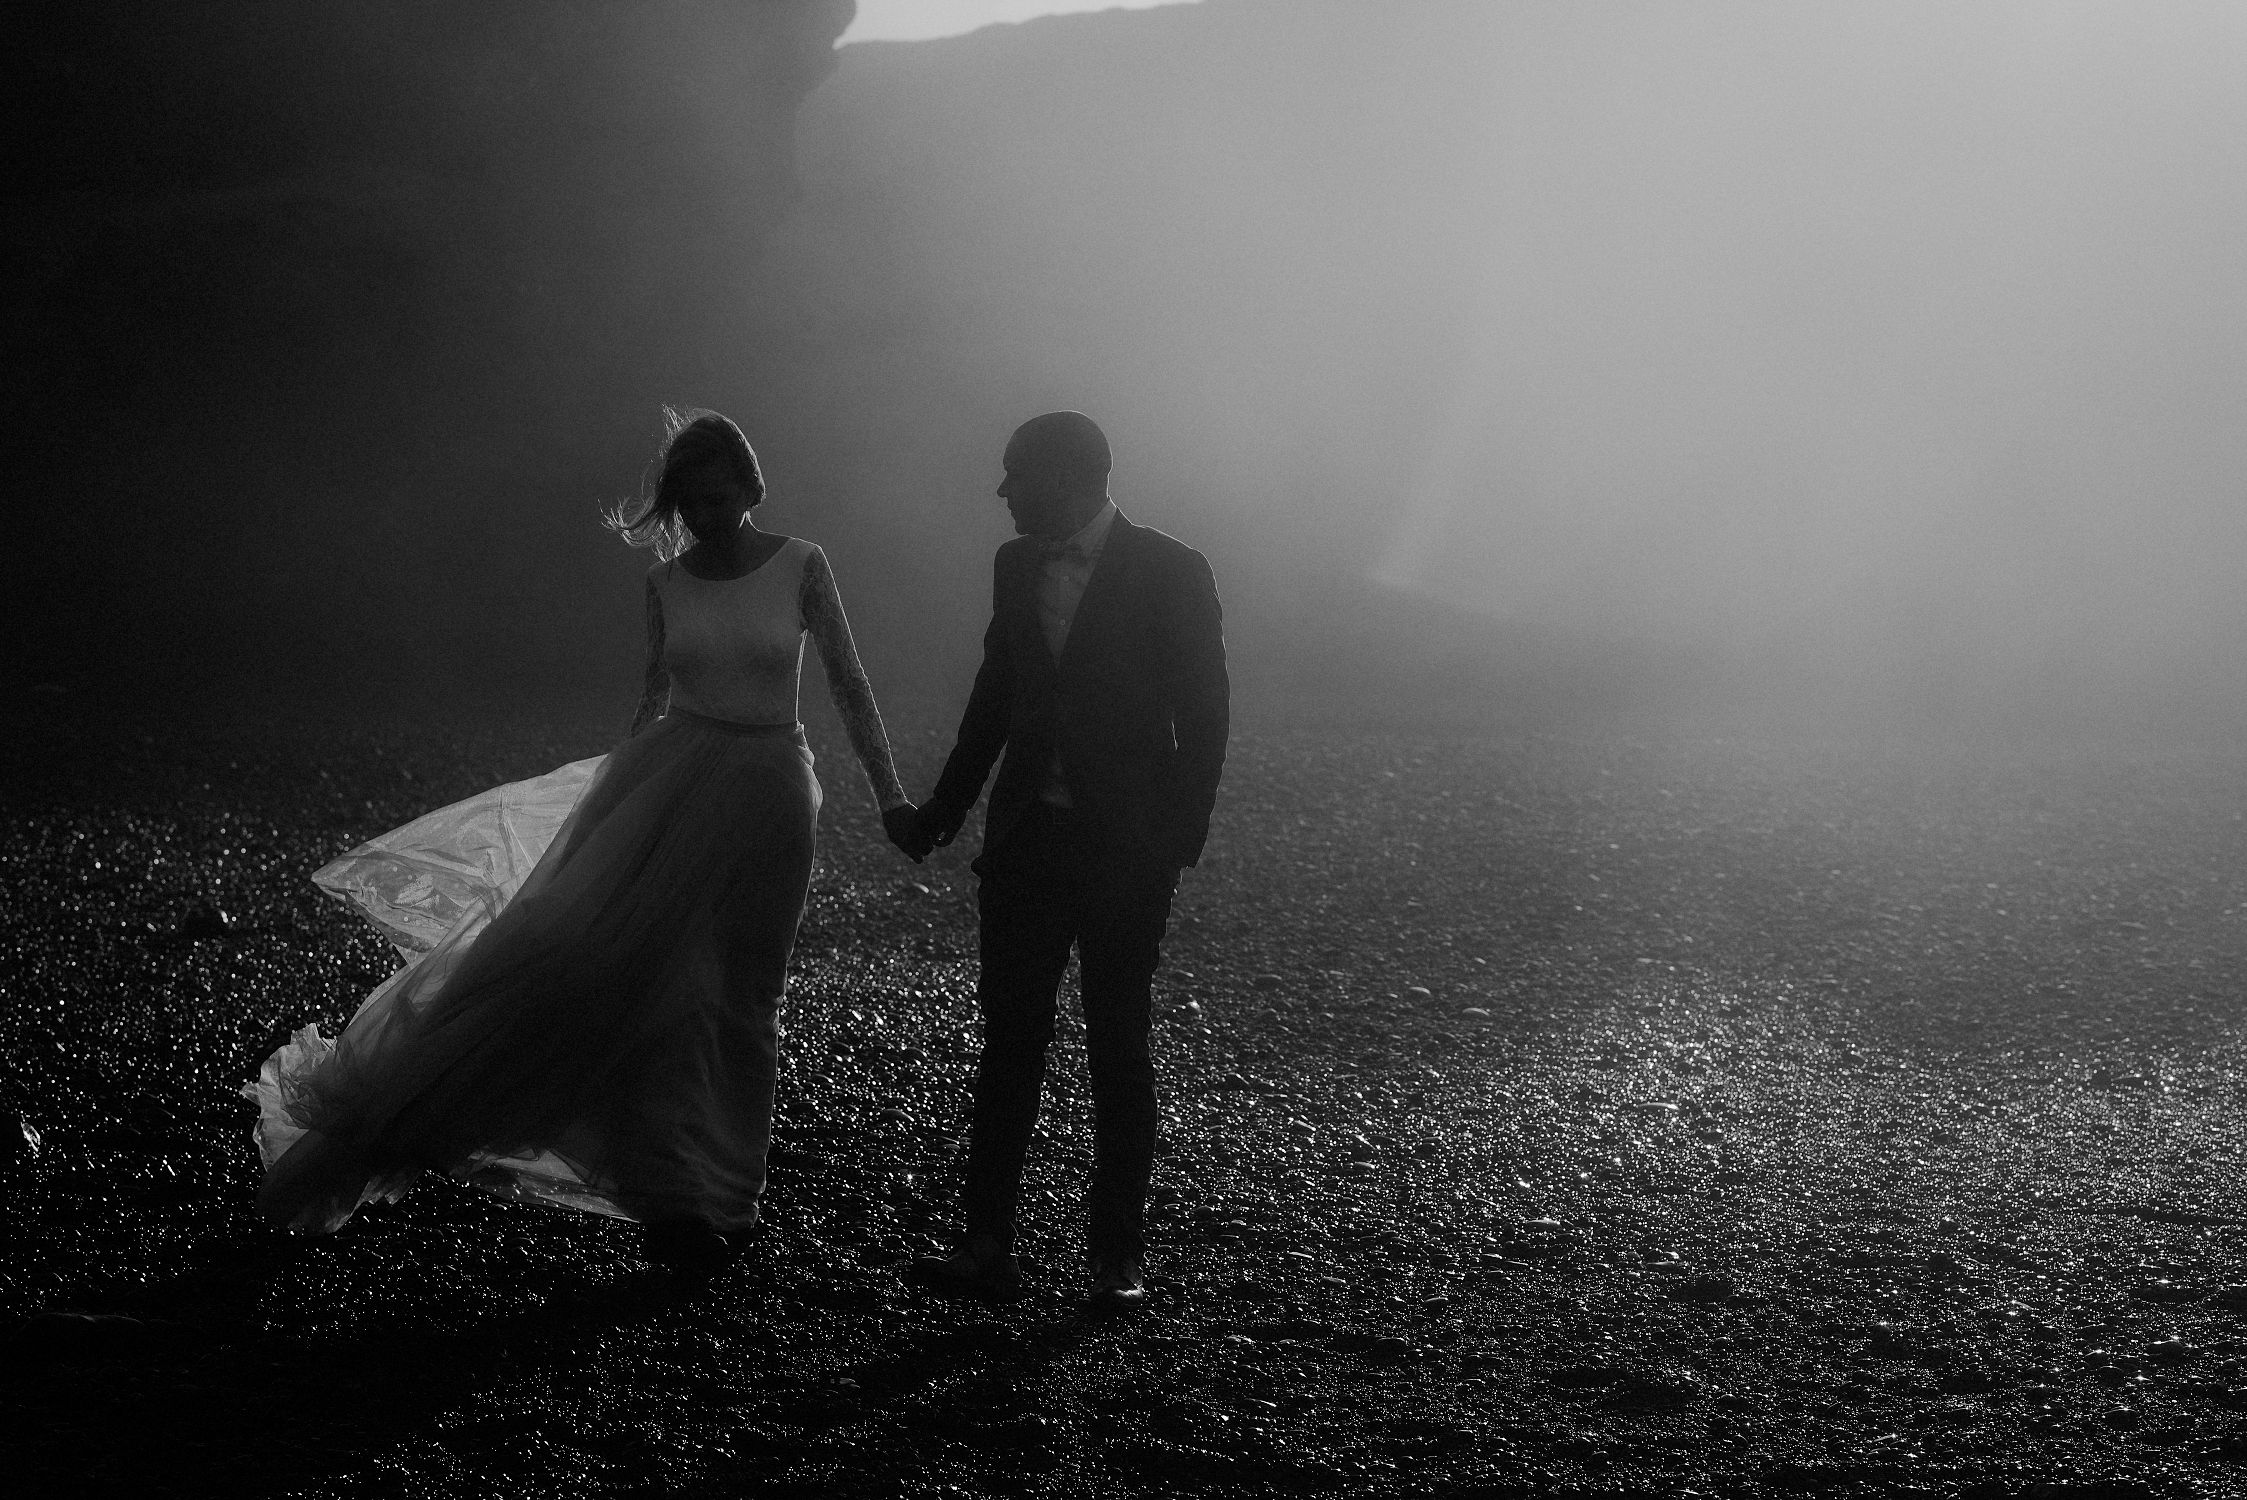 Snaefellsnes bride and groom walking on the beach black and white